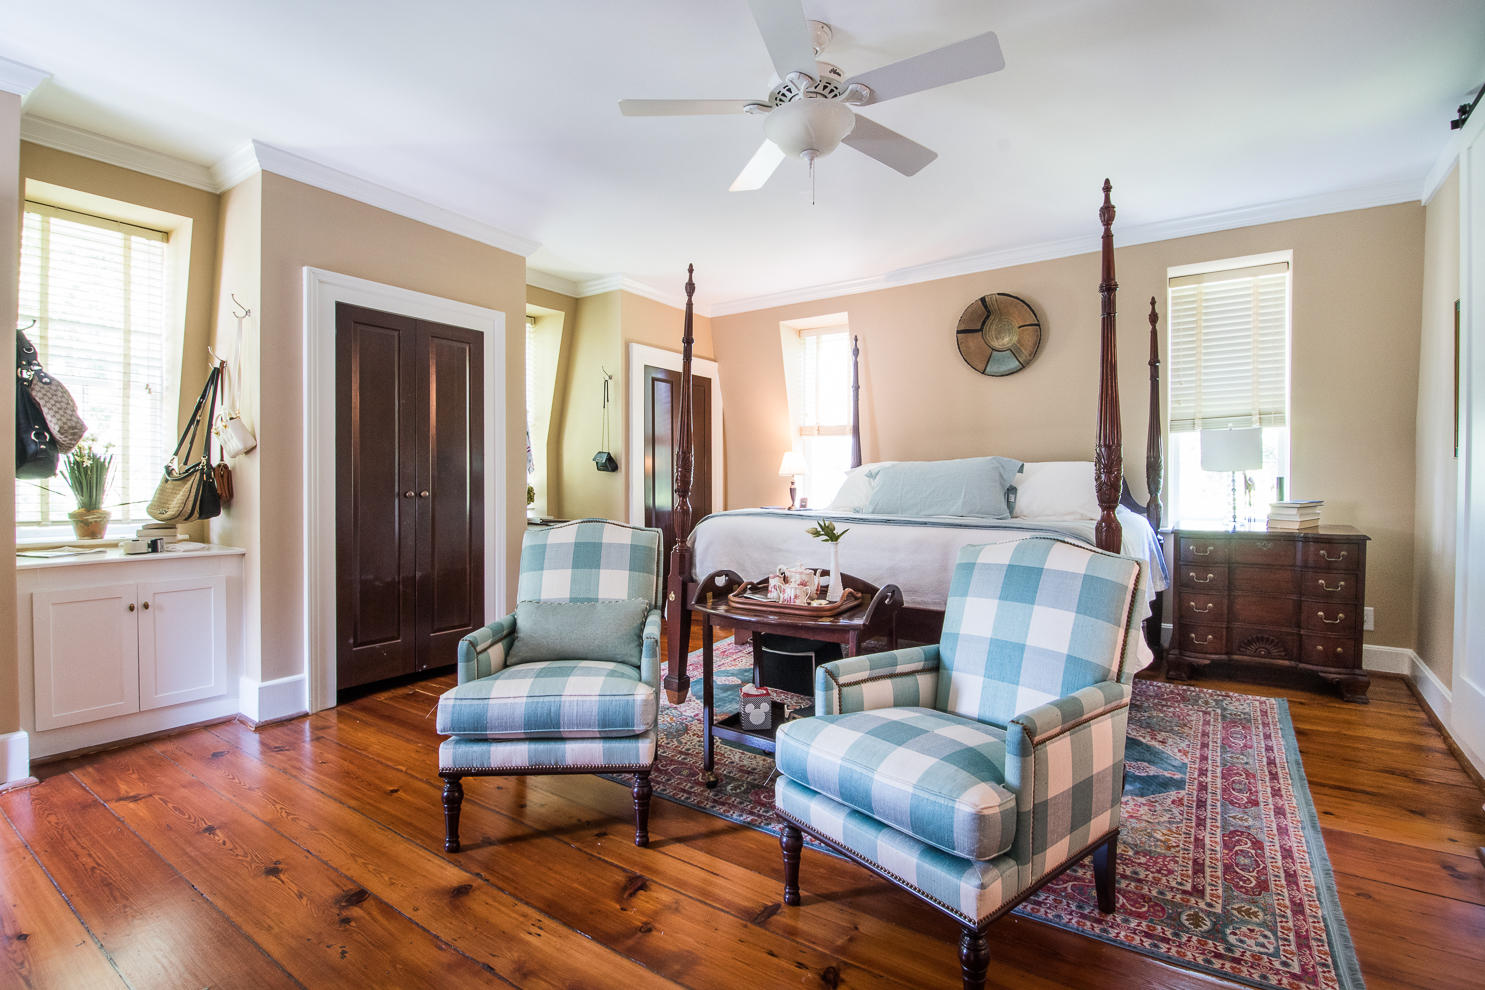 South of Broad Homes For Sale - 1 Prices, Charleston, SC - 29